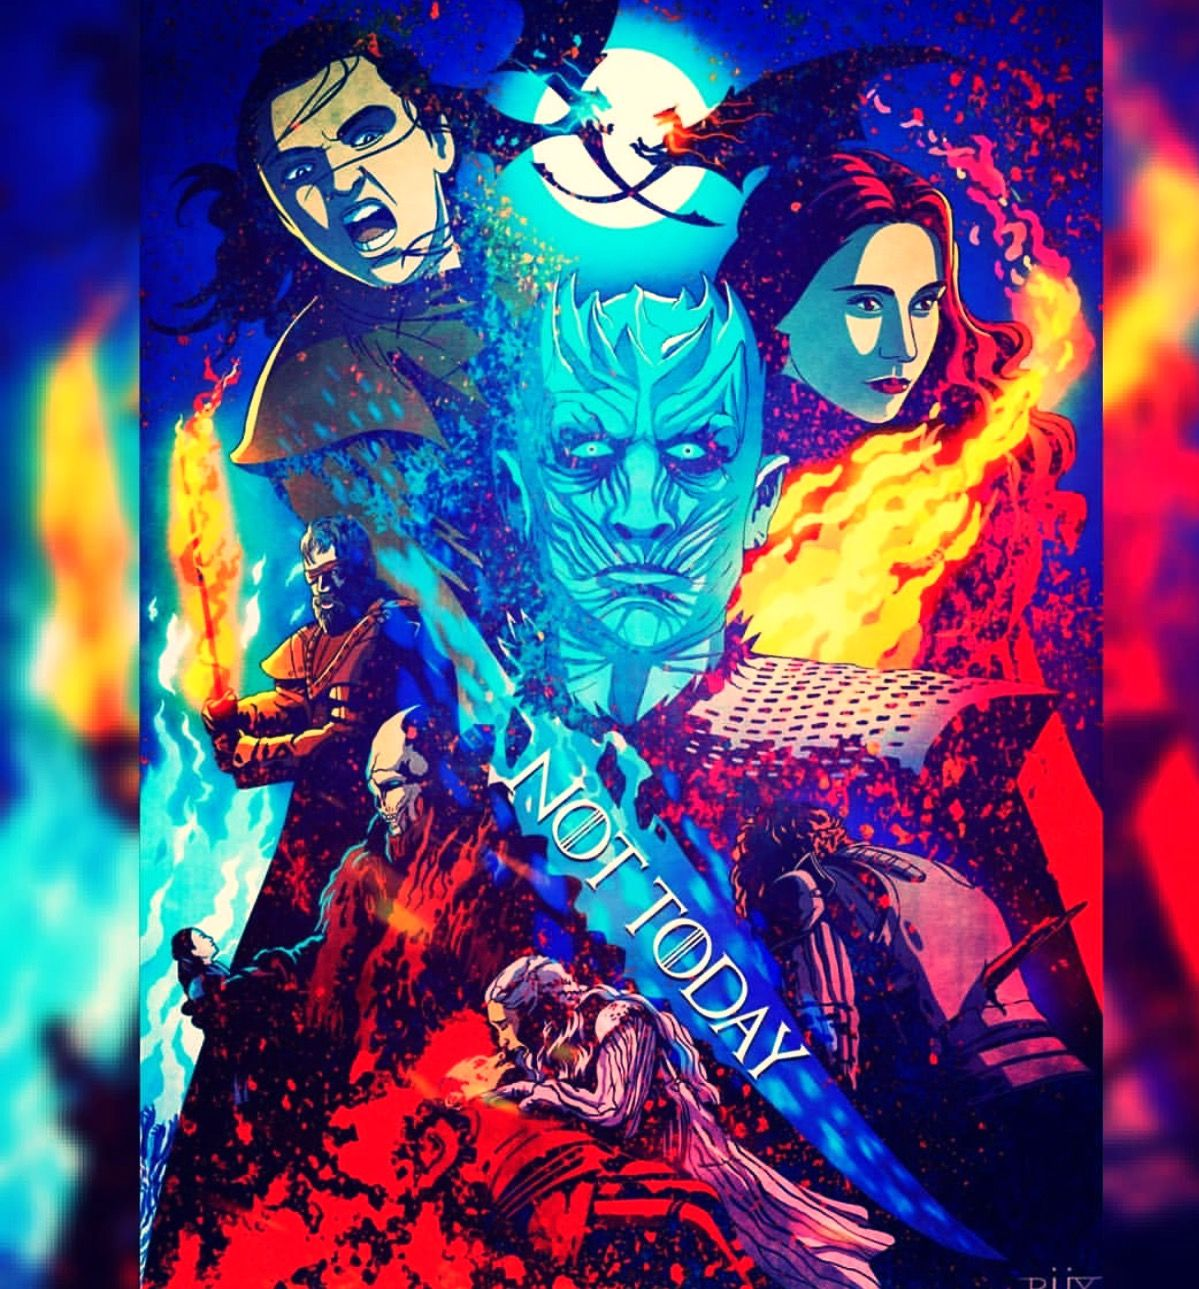 Pin by Emilio Trainor on GOT (With images) Fan art